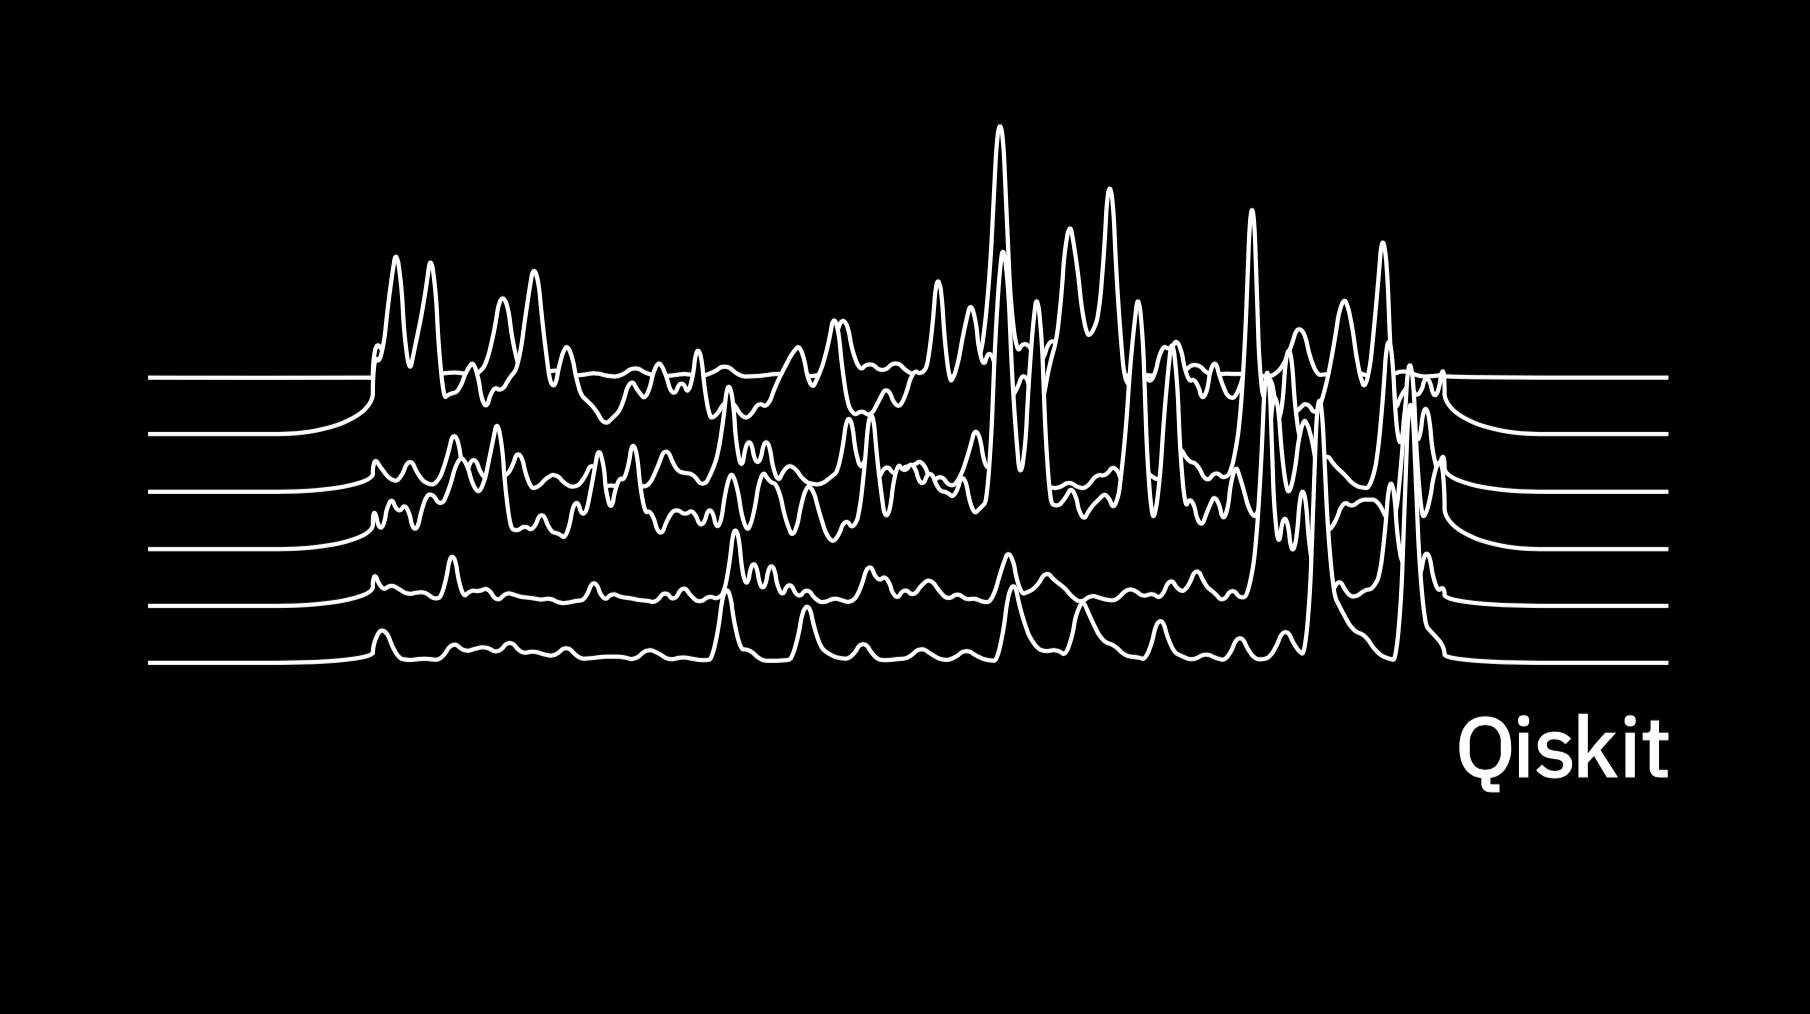 Image of data from a quantum computer styled like the Unknown Pleasures album artwork.